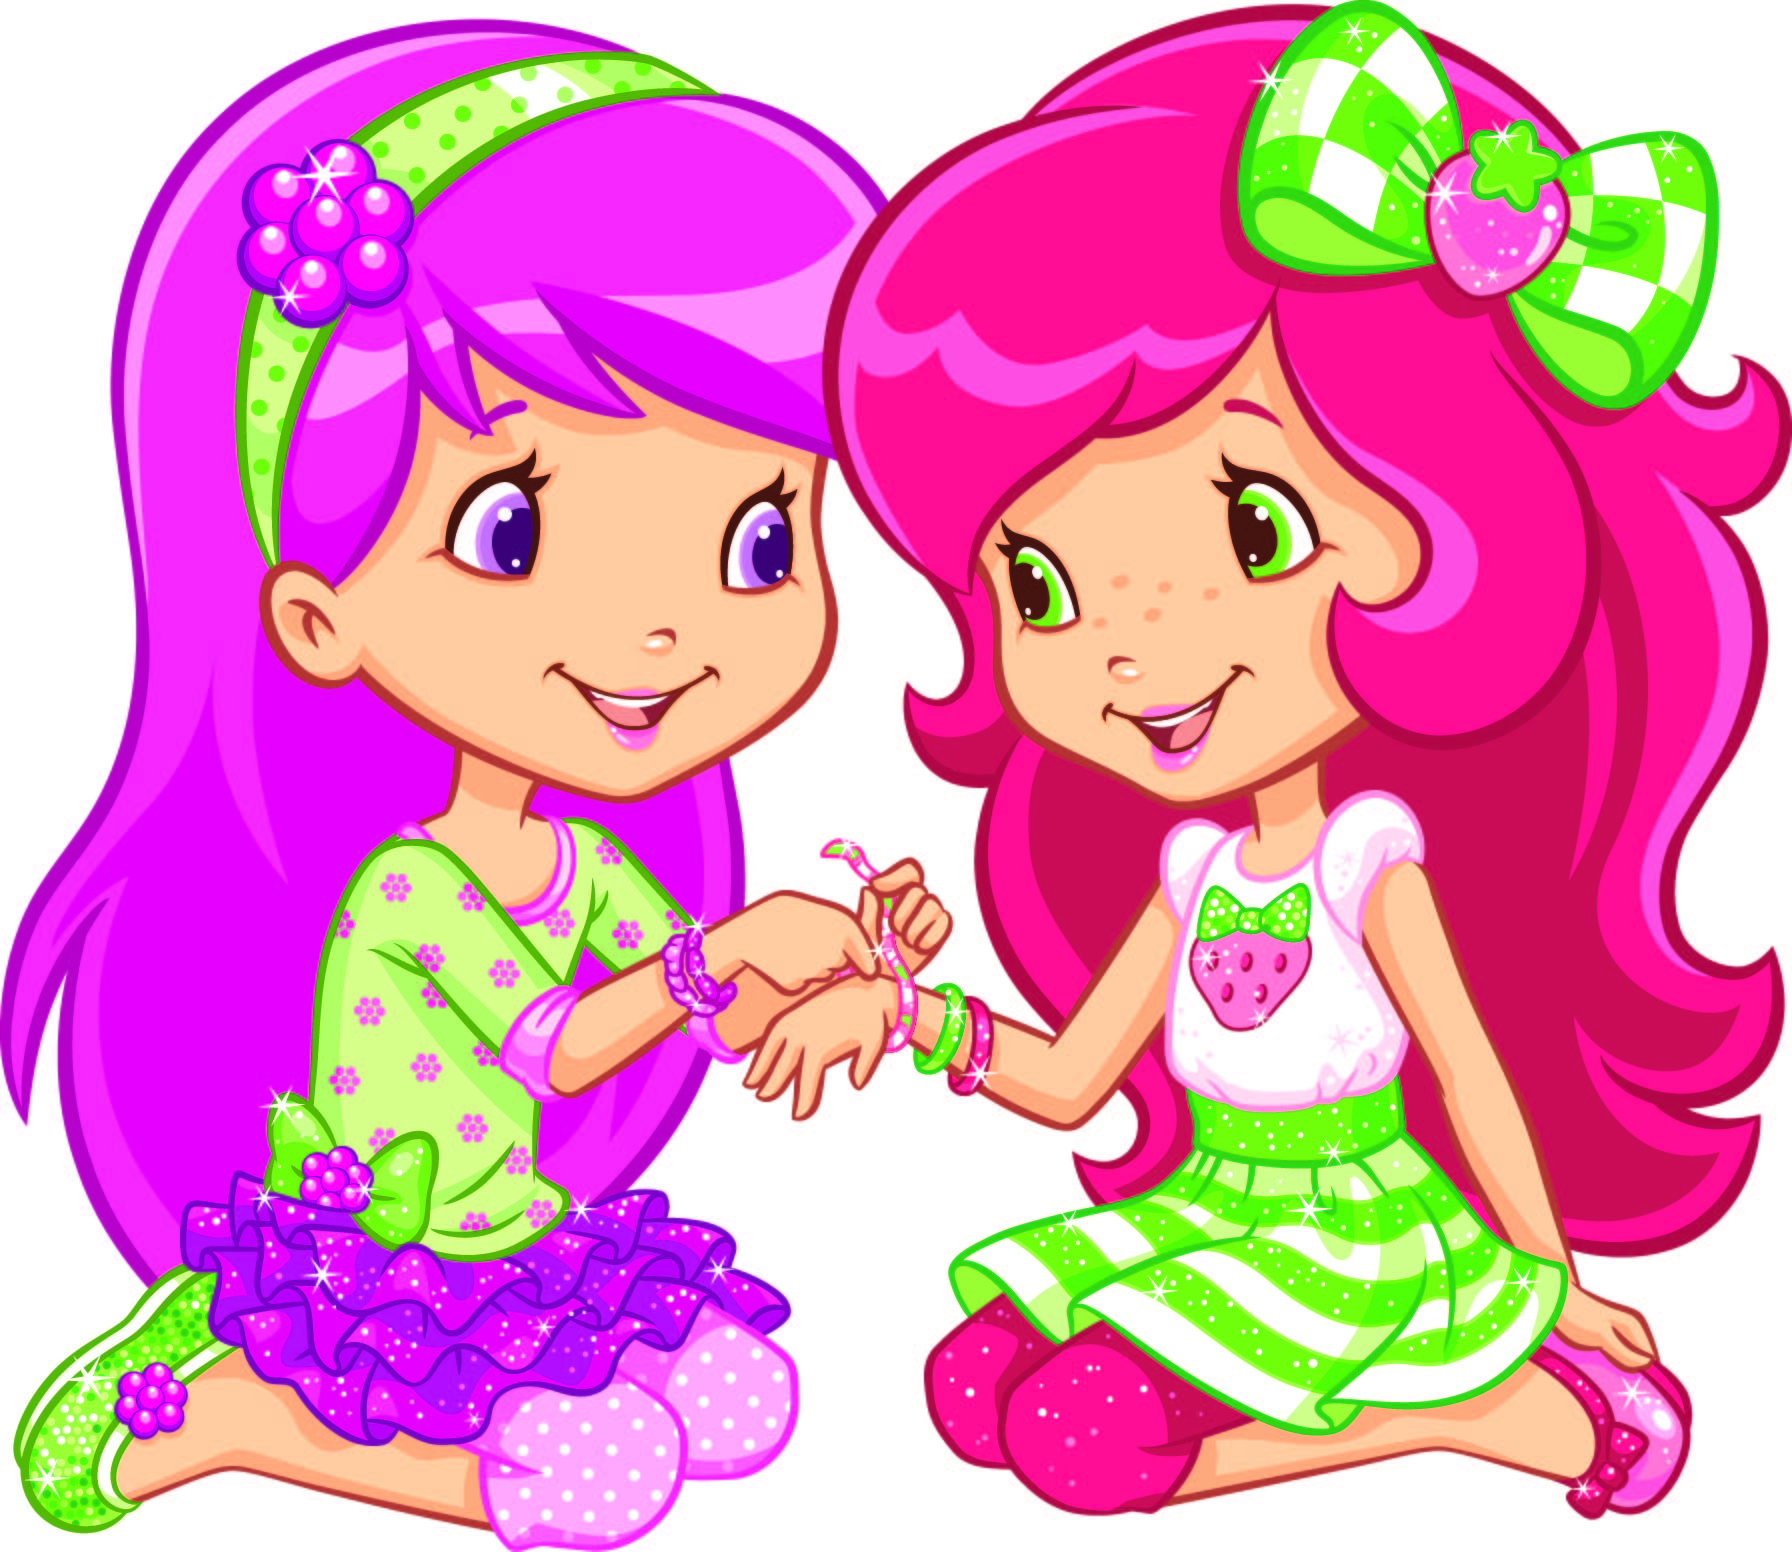 Uncategorized Strawberry Shortcake Picture strawberry shortcake archives coris cozy corner sunday august 3rd is national friendship day and shortcake